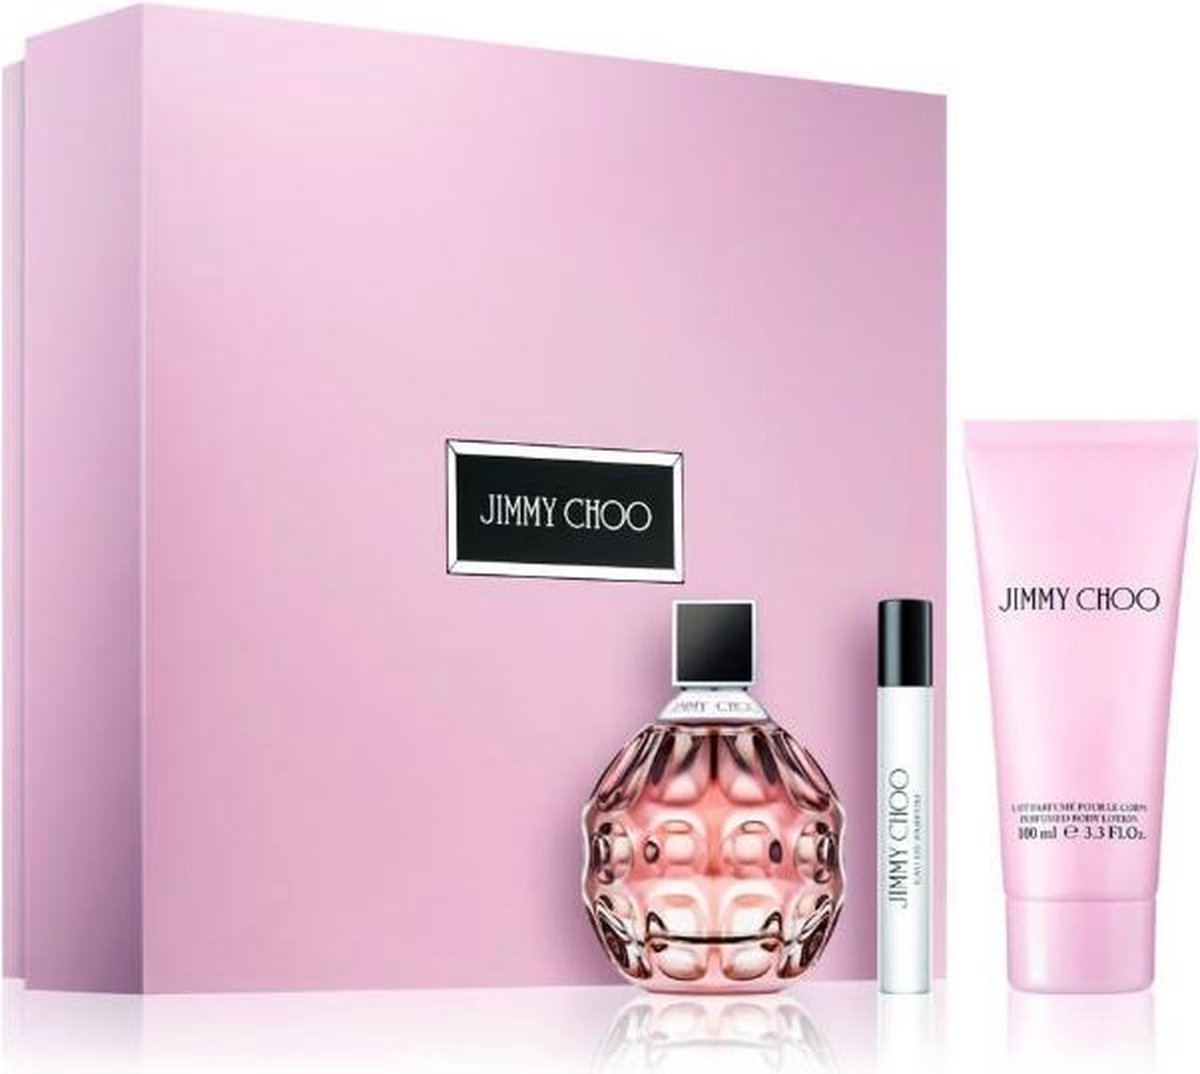 Jimmy Choo Eau De Parfum Spray 100ml Set 3 Pieces 2020